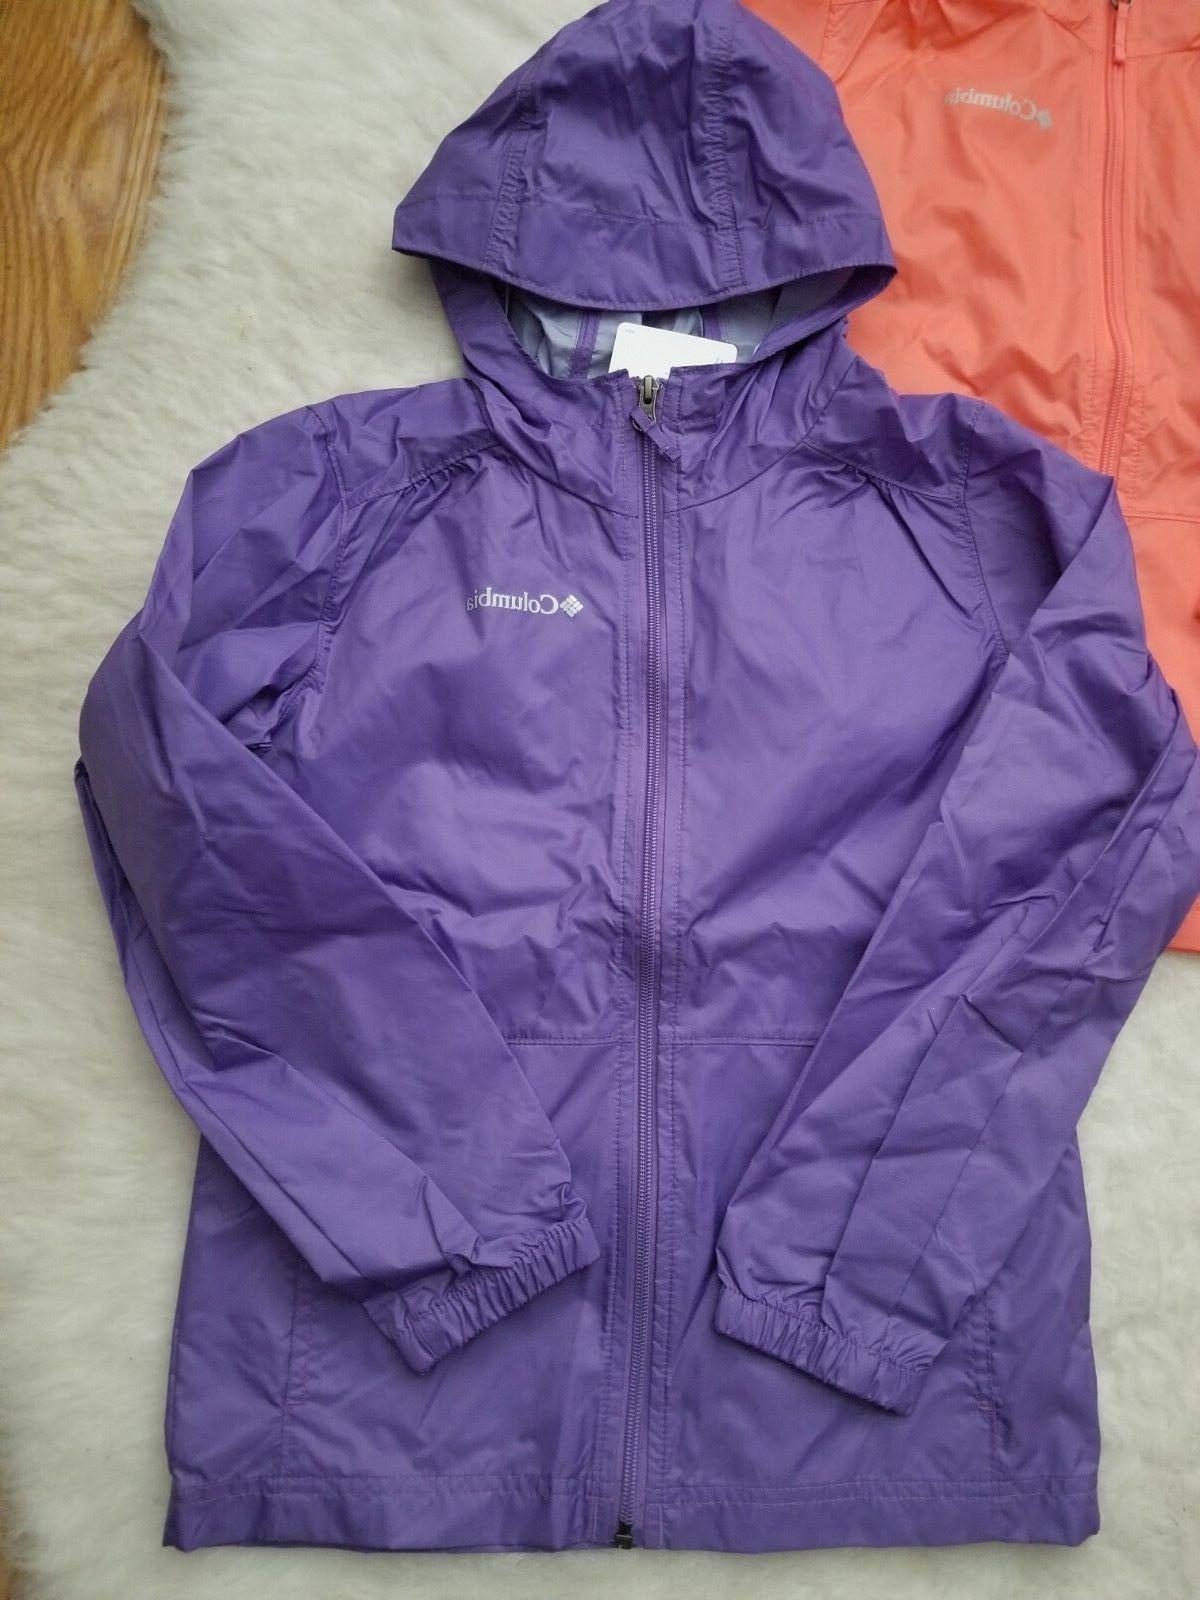 NWT $45 Slippery SELECT SIZE